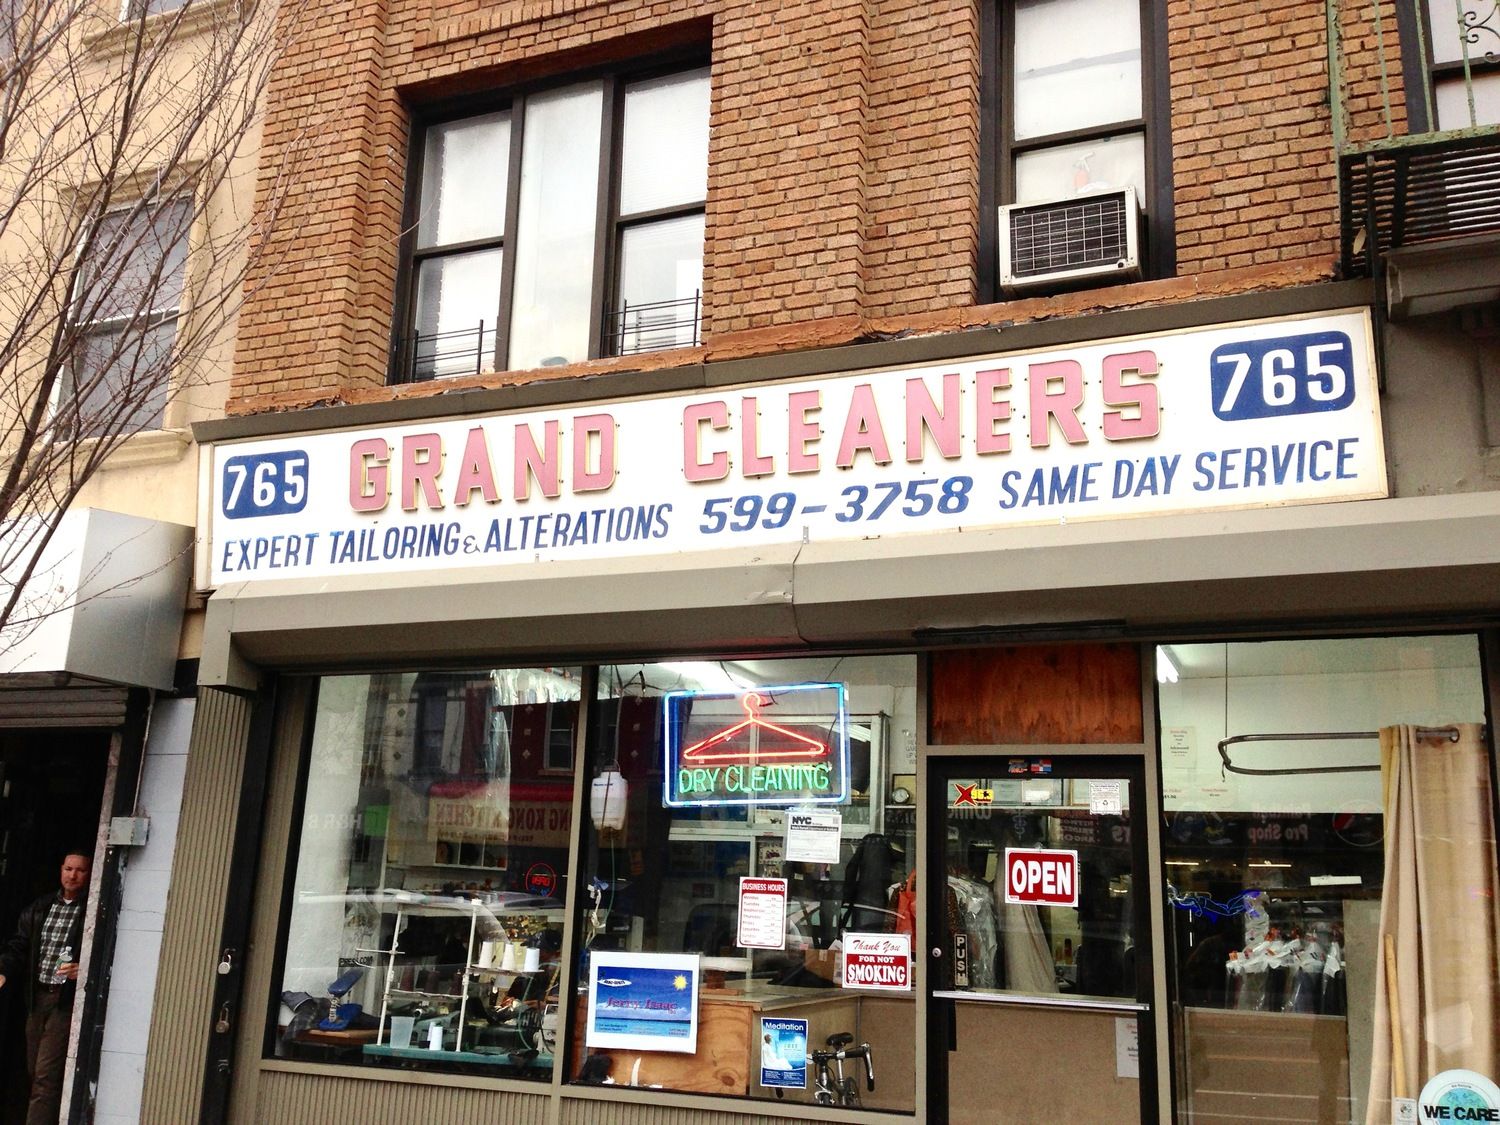 Brand Cleaners